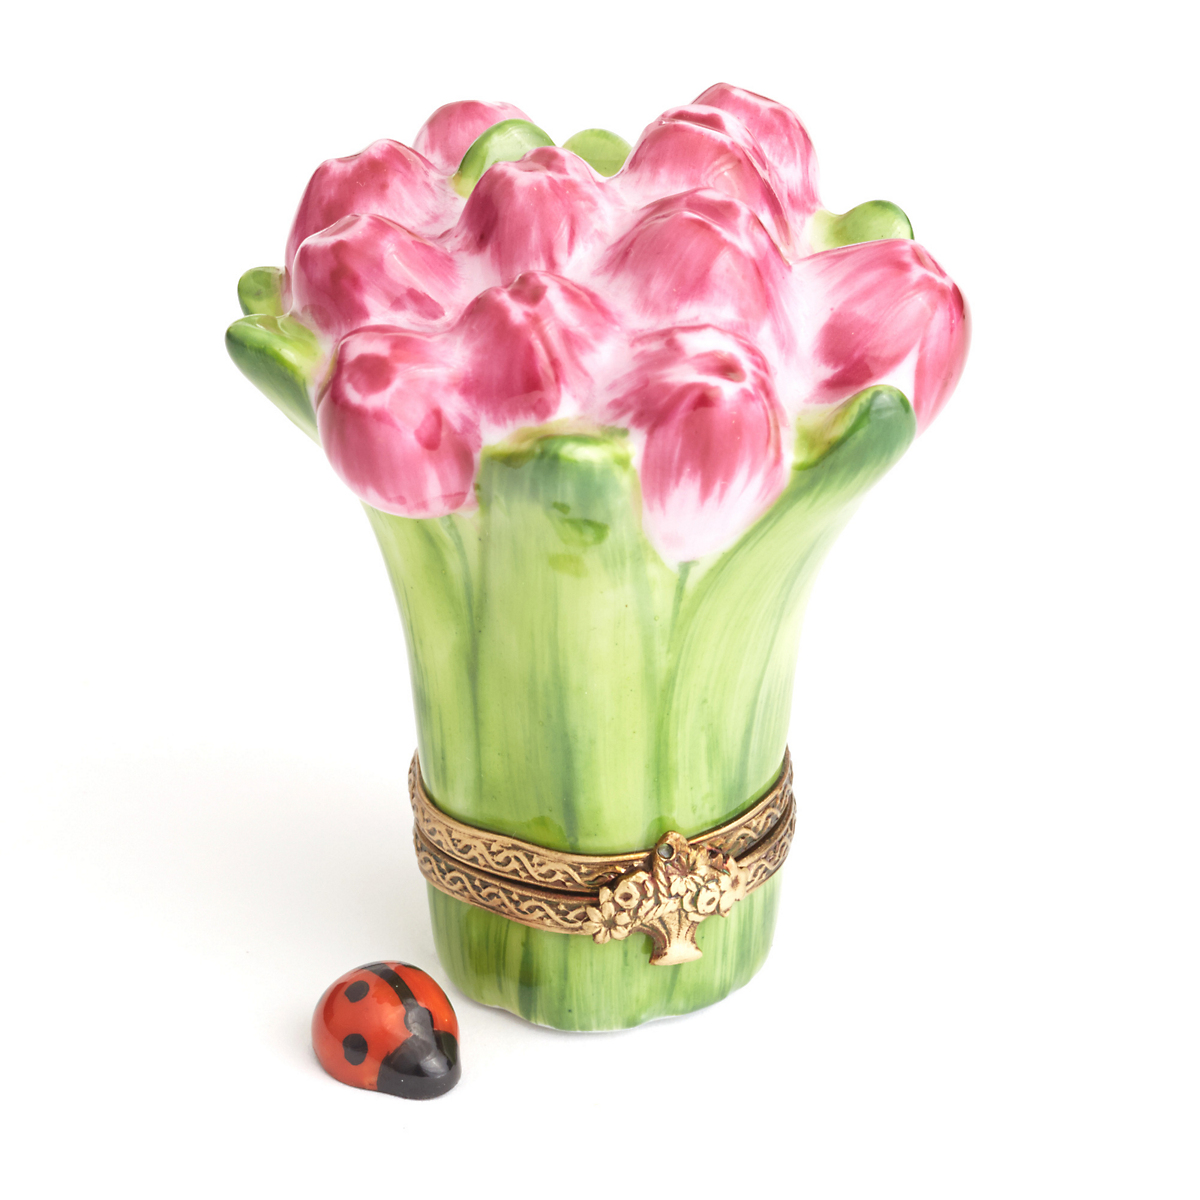 Limoges Bouquet Of Tulips With Ladybug